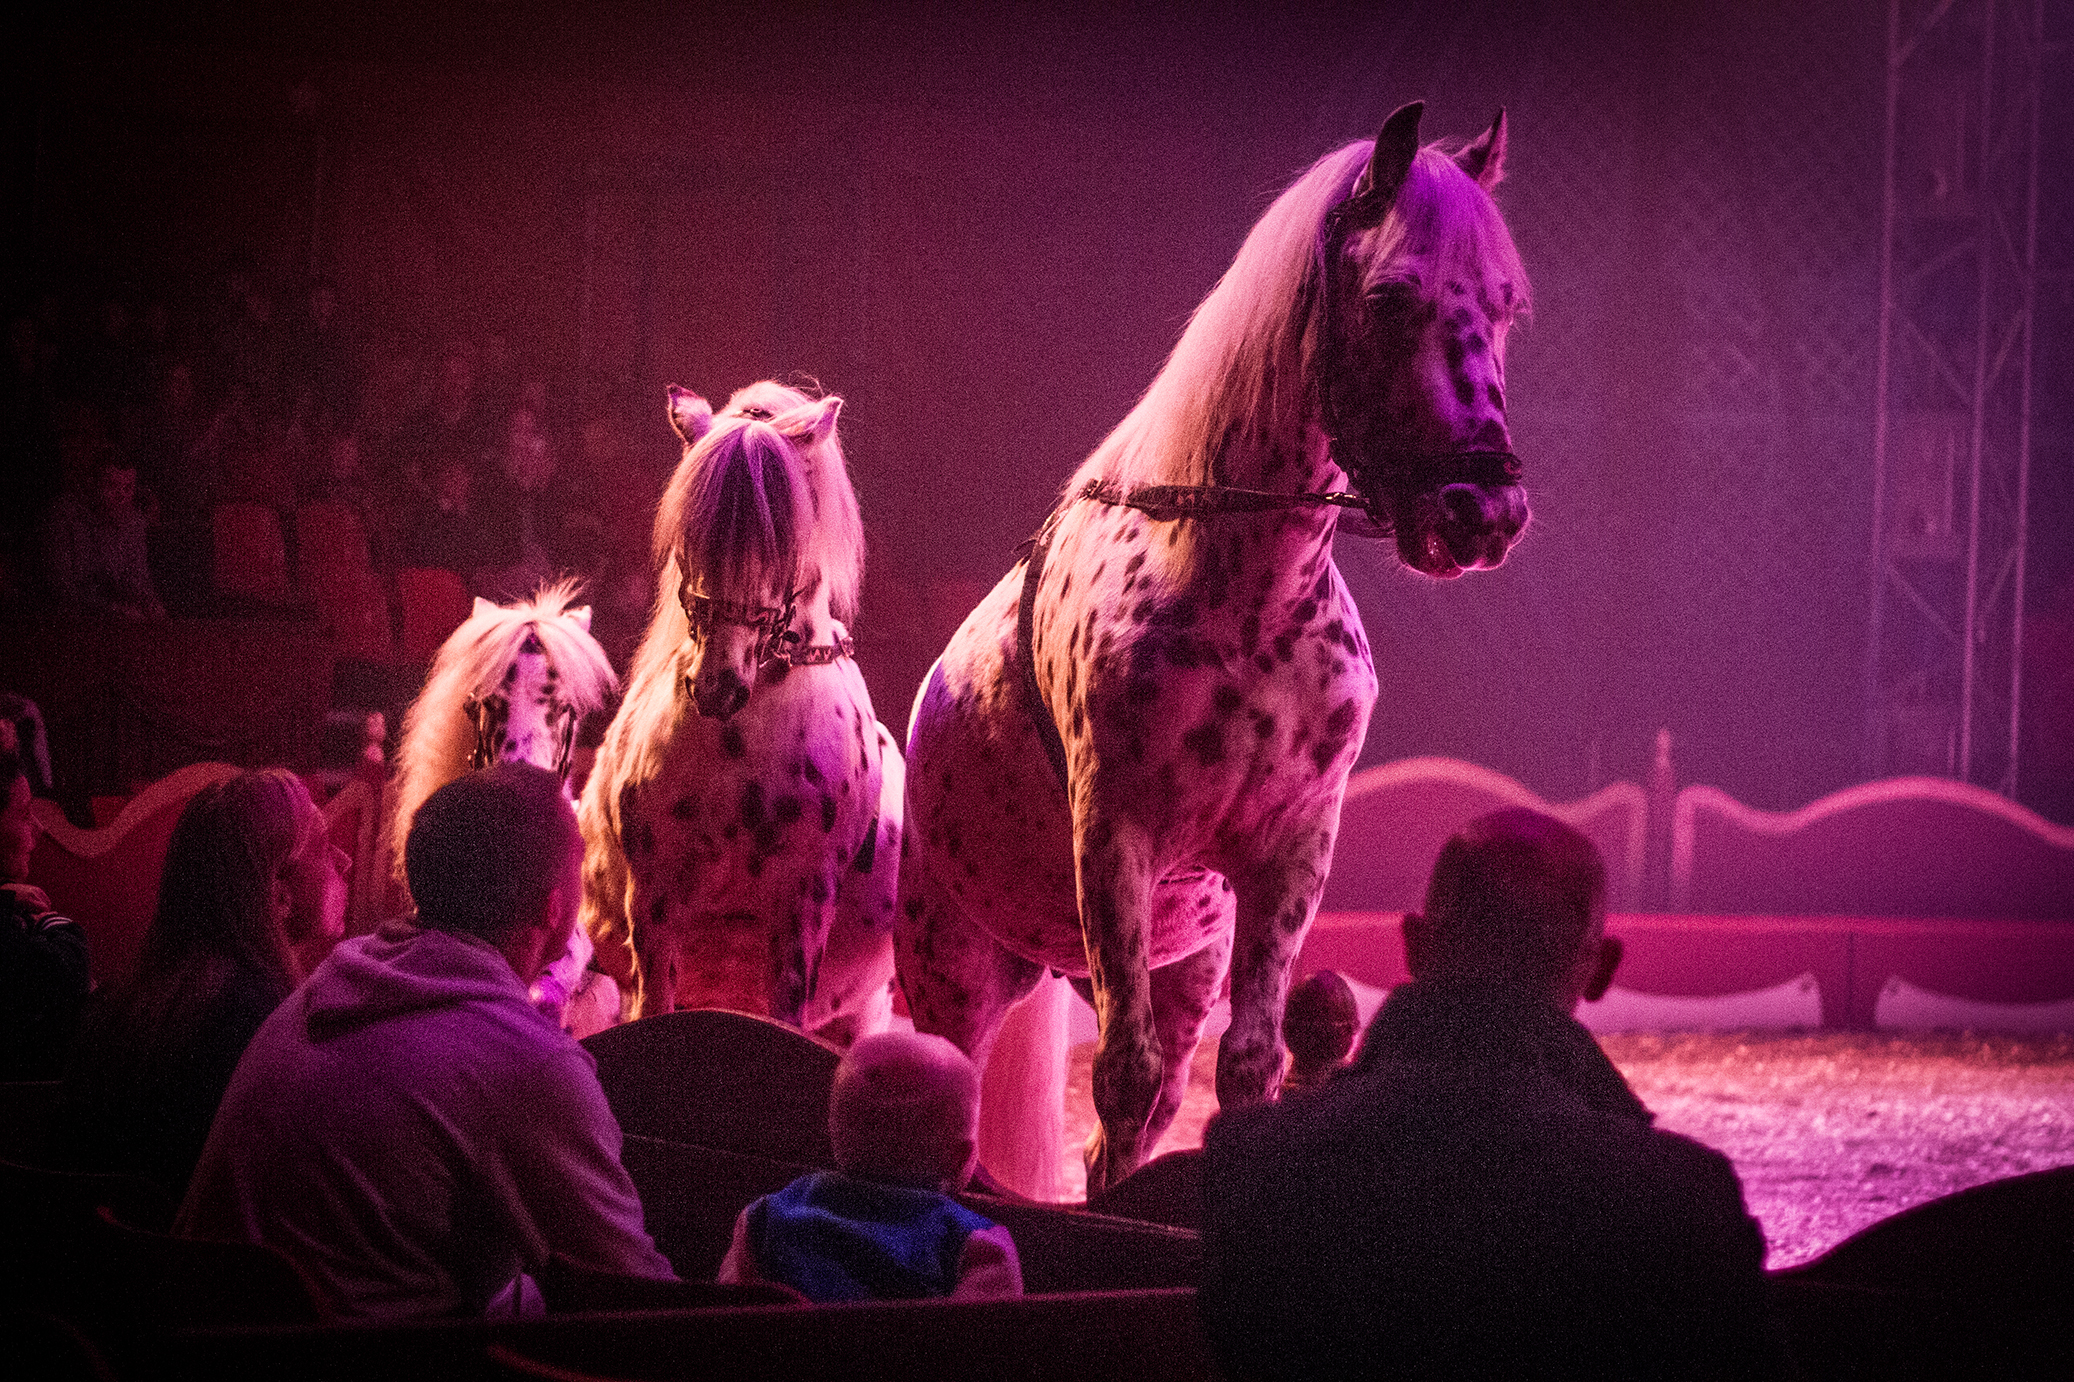 Dalmatian ponies get close to the audience